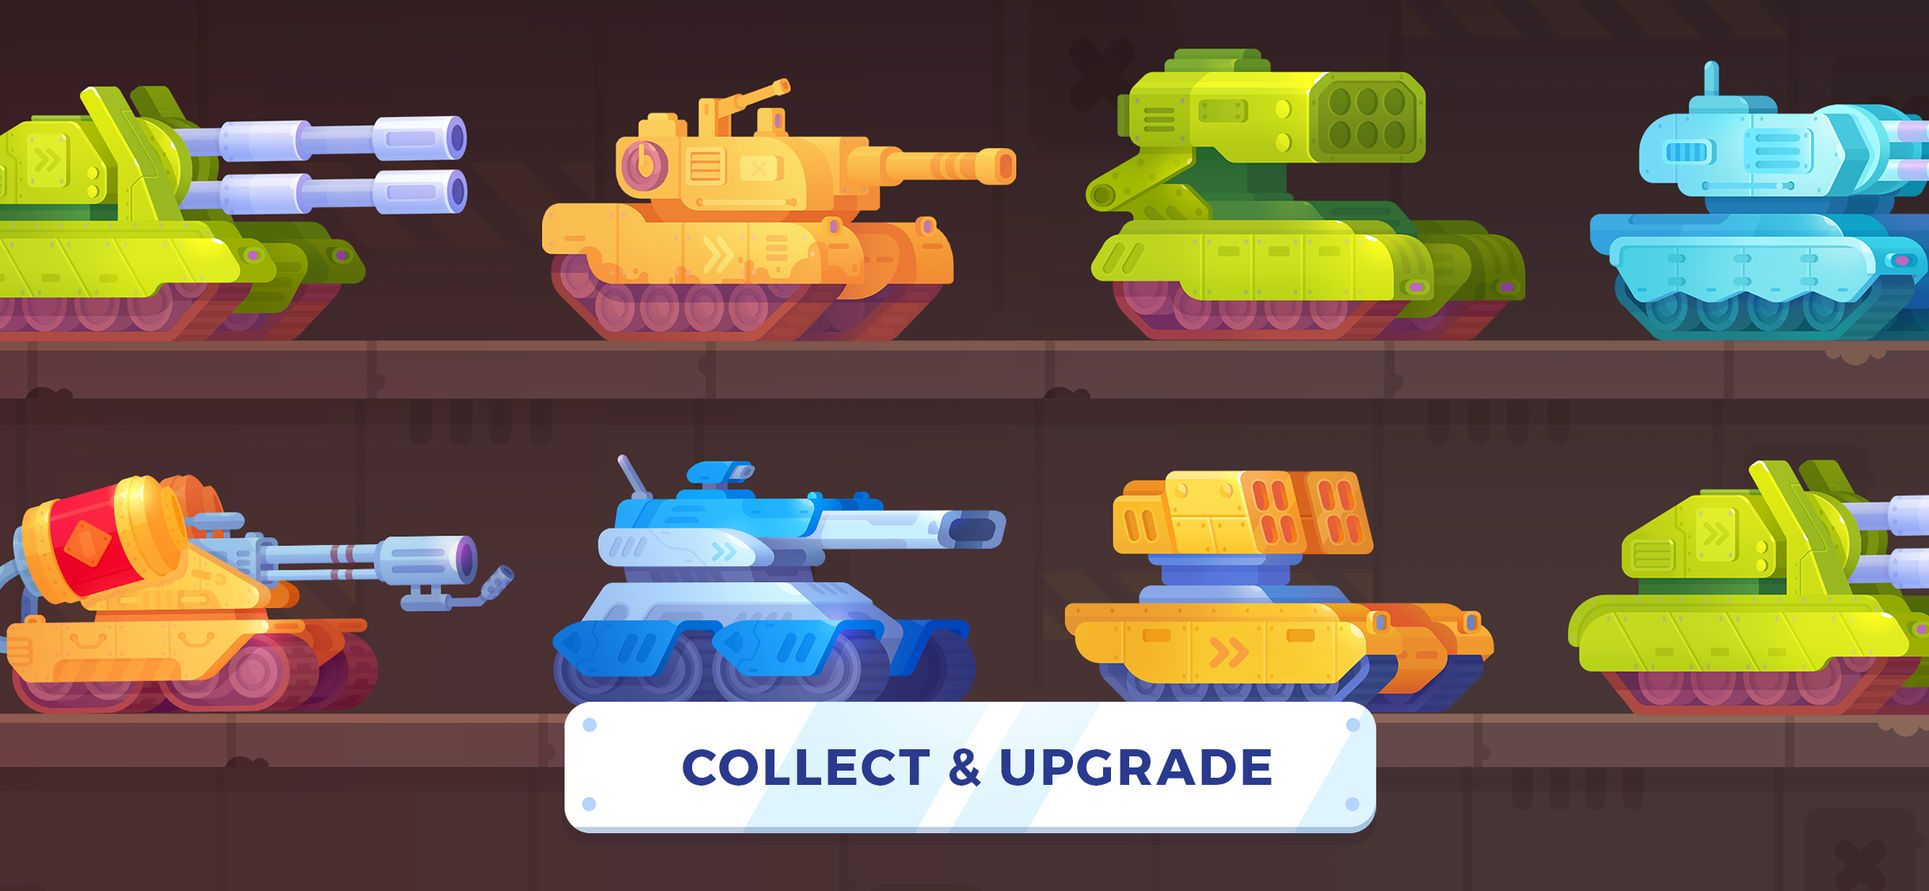 Tank Stars ActionArcadeappsios Game app, Games, App